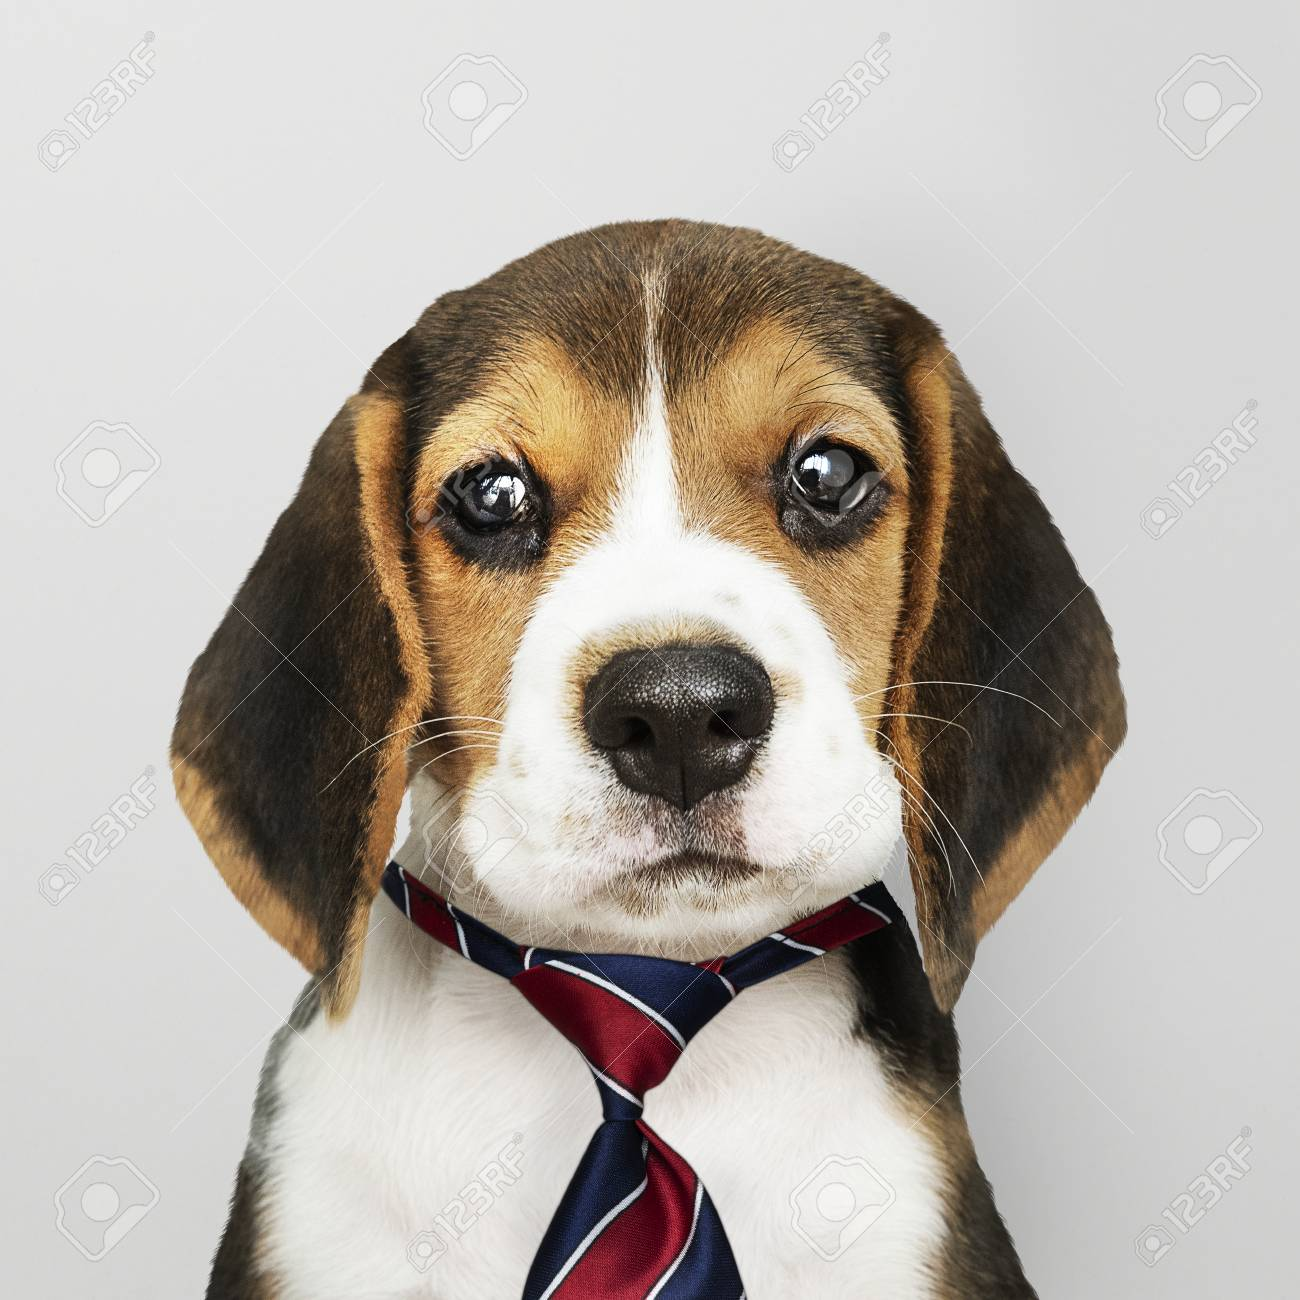 Cute Beagle Puppy In A Red Blue And White Striped Necktie Stock Photo Picture And Royalty Free Image Image 115871962